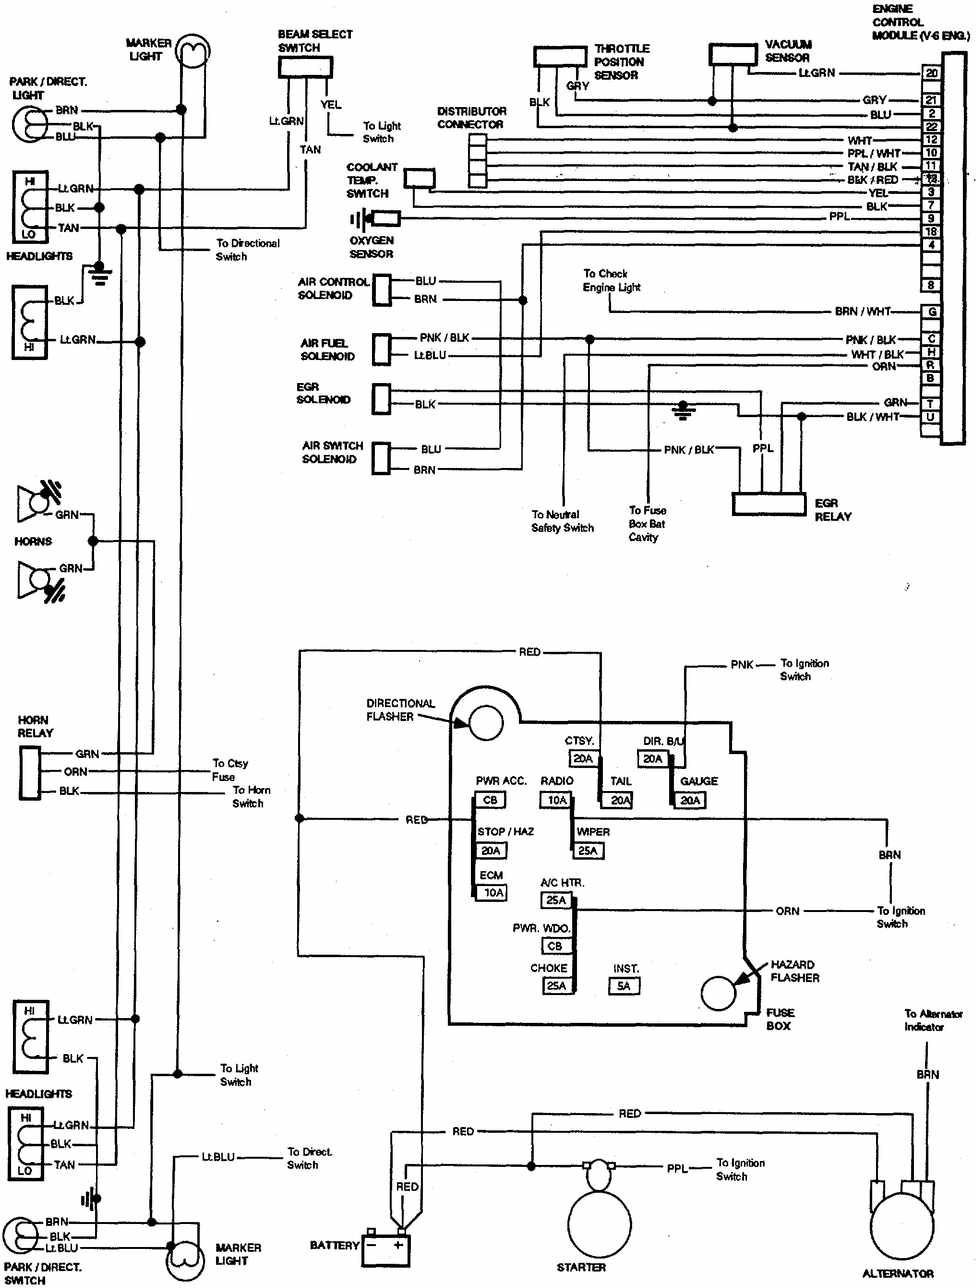 chevy v8 wiring diagram wiring diagram1984 chevy truck ignition wiring